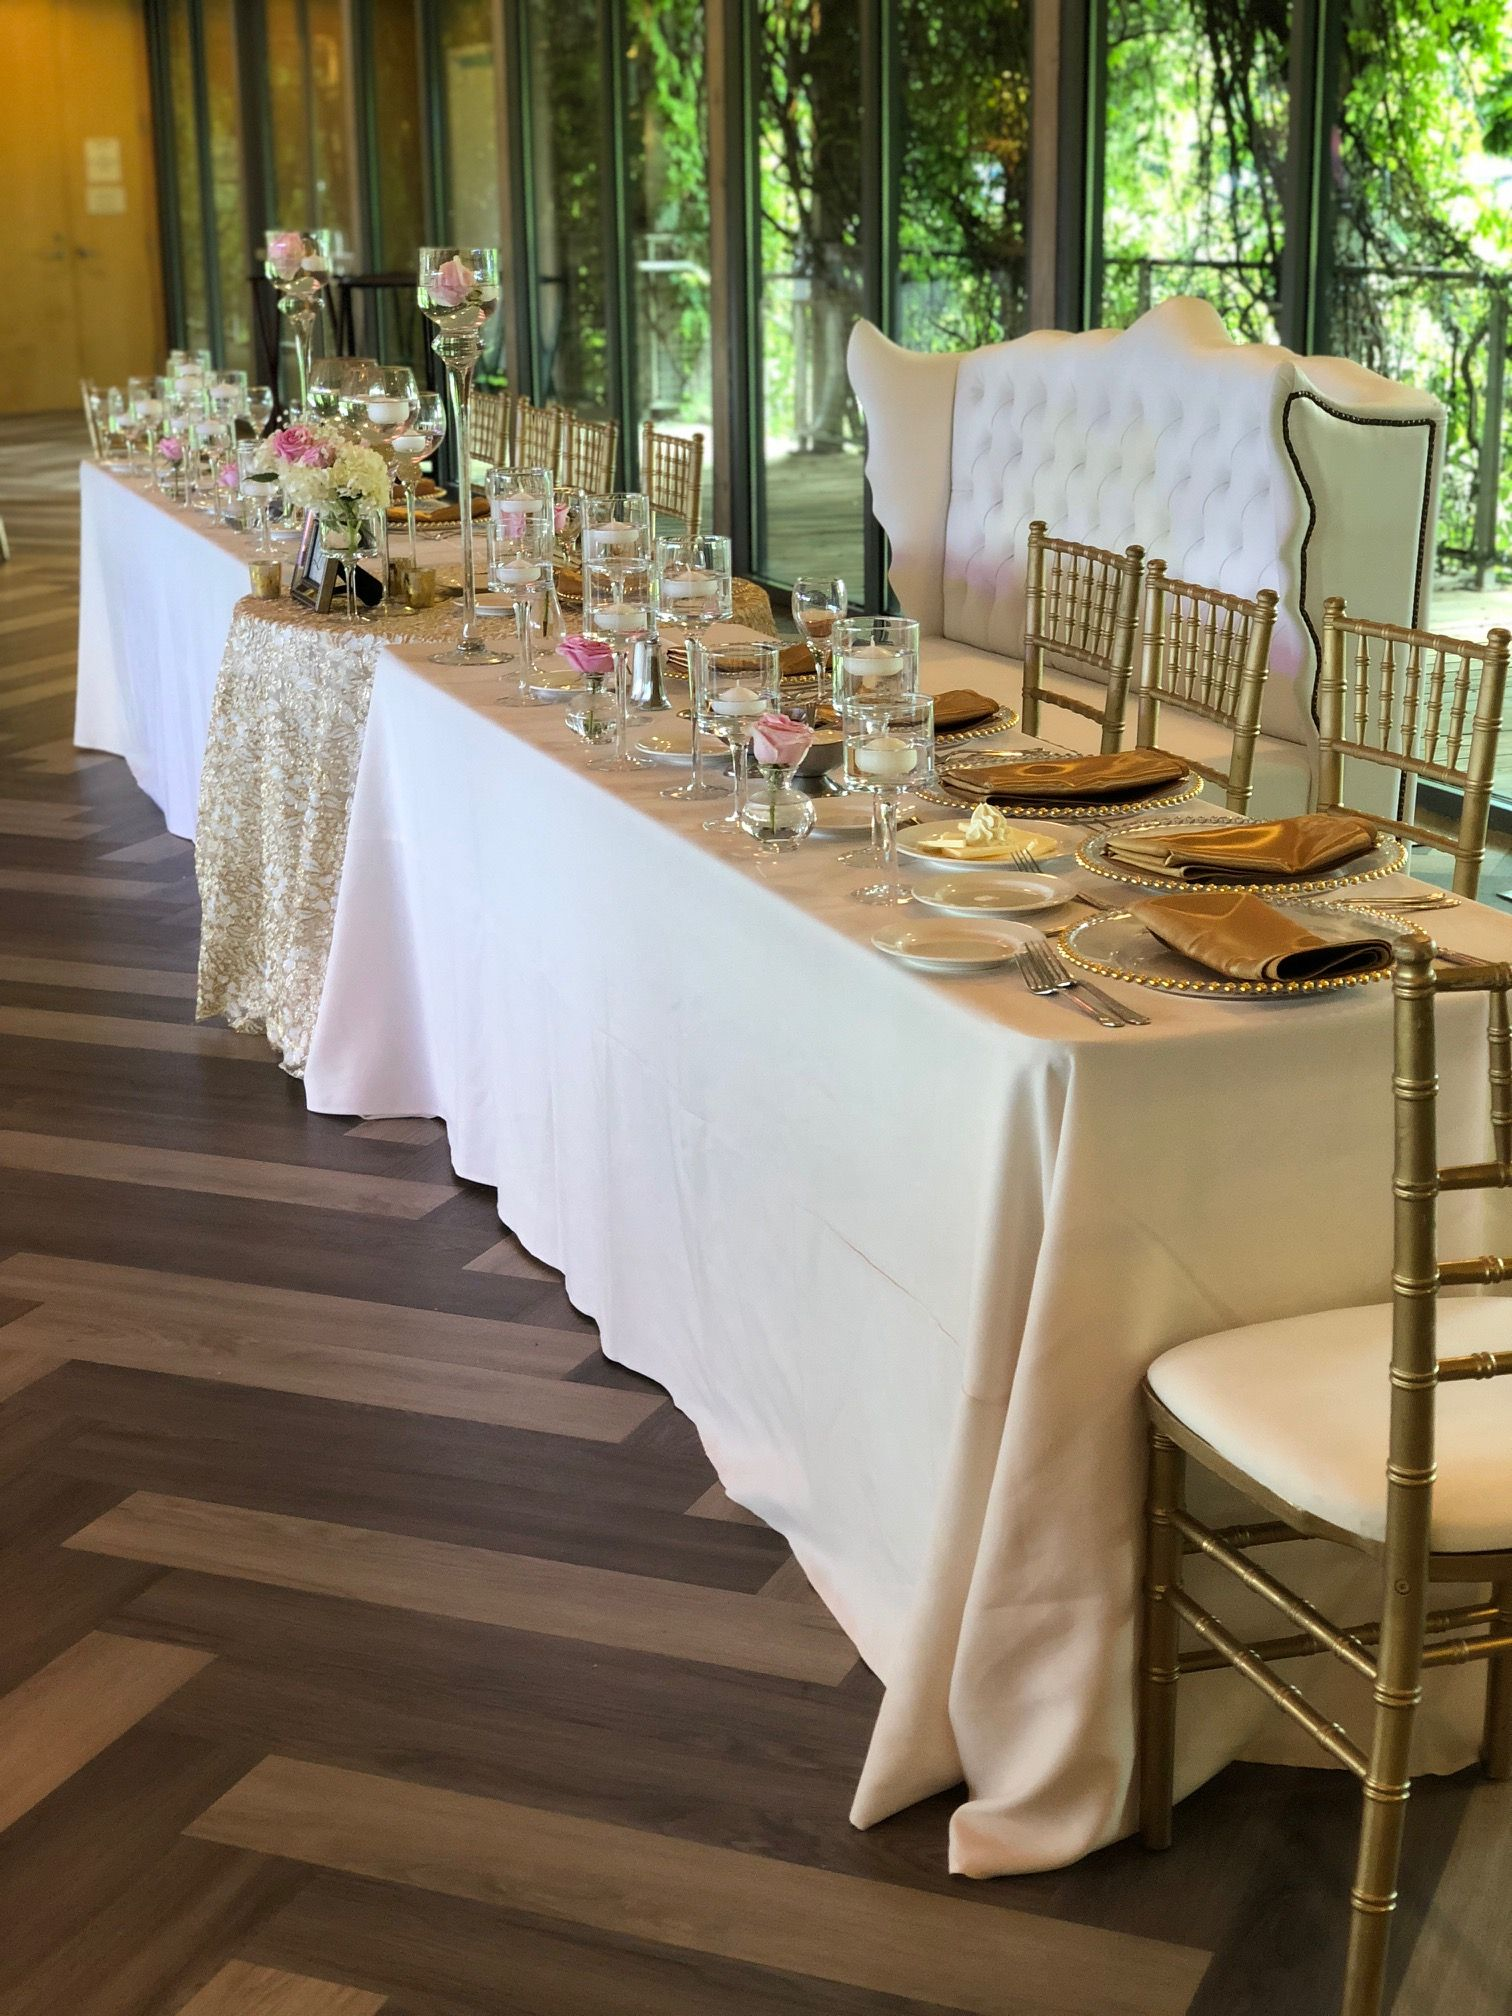 head table for wedding reception at forest park golf course rh pinterest com